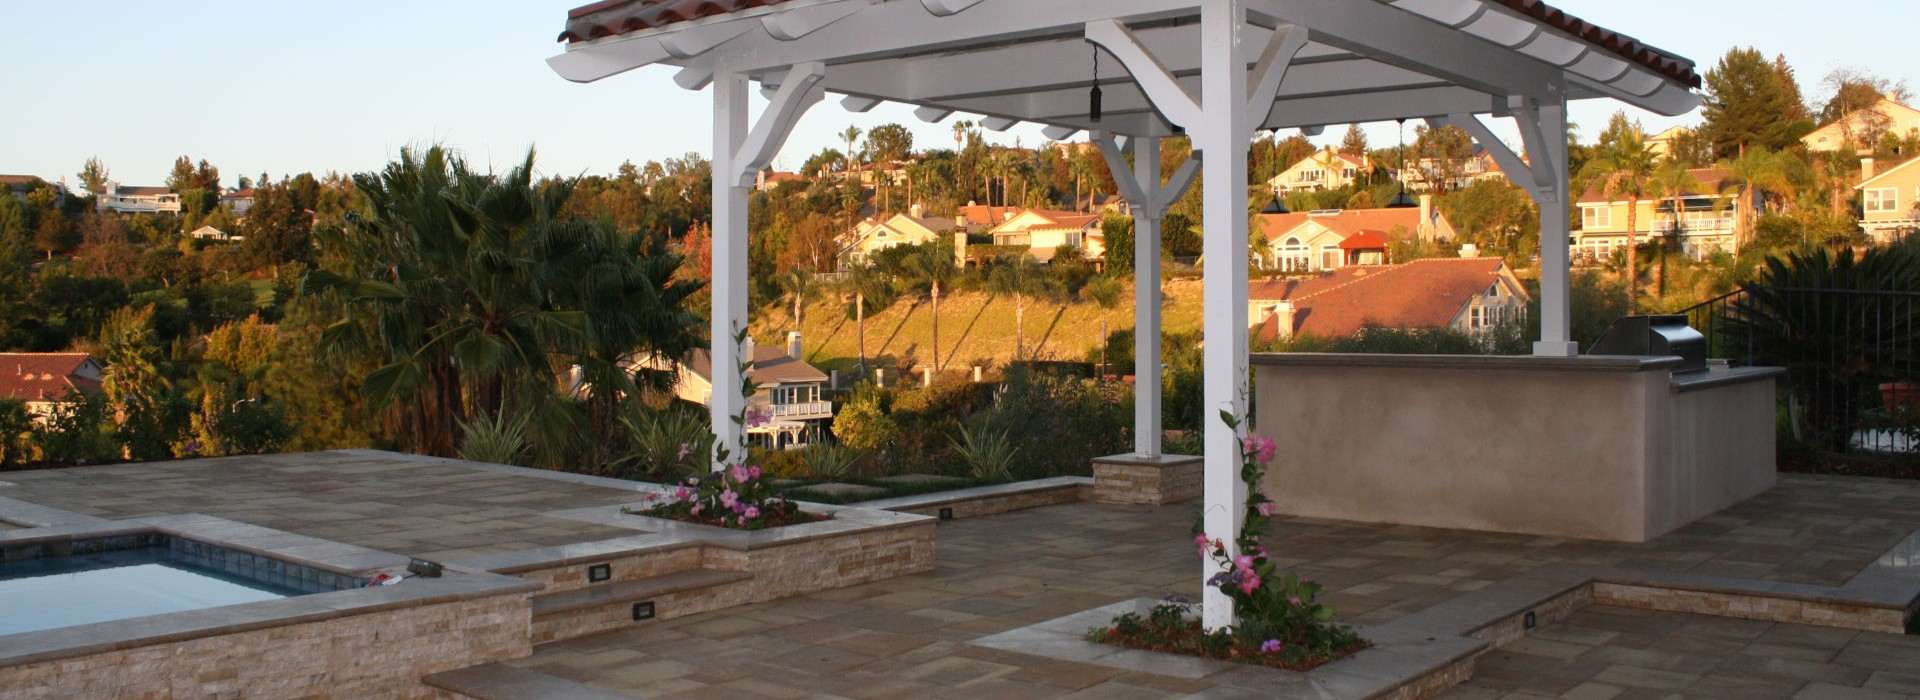 room-with-view-calabasas-banner-2-1.jpg